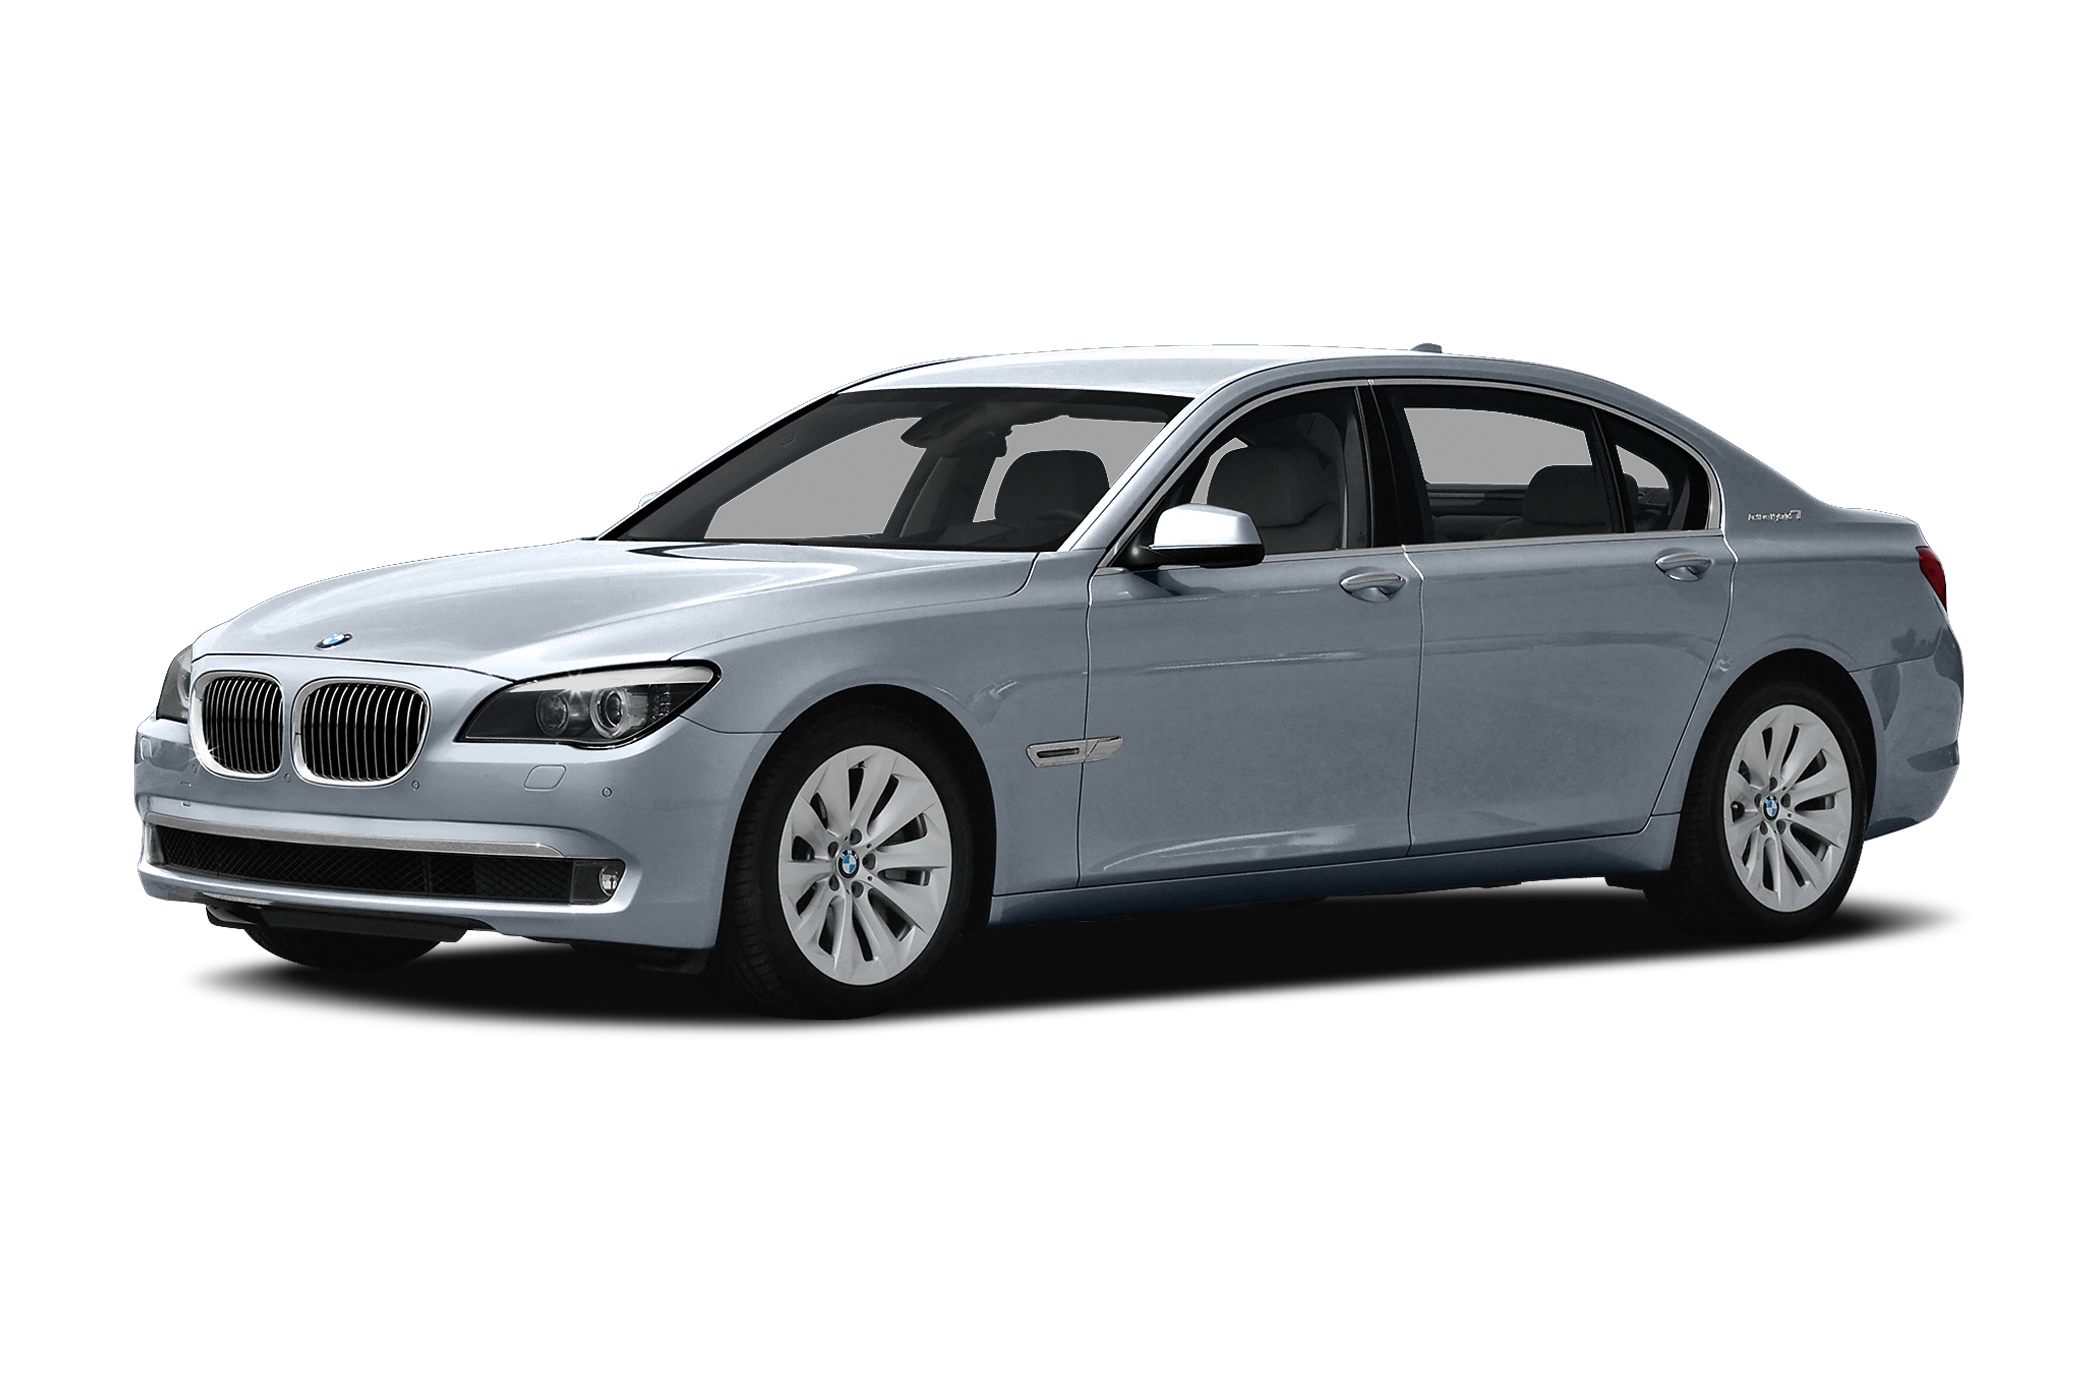 2011 BMW ActiveHybrid 750 Li Sedan for sale in Palm Springs for $38,000 with 54,947 miles